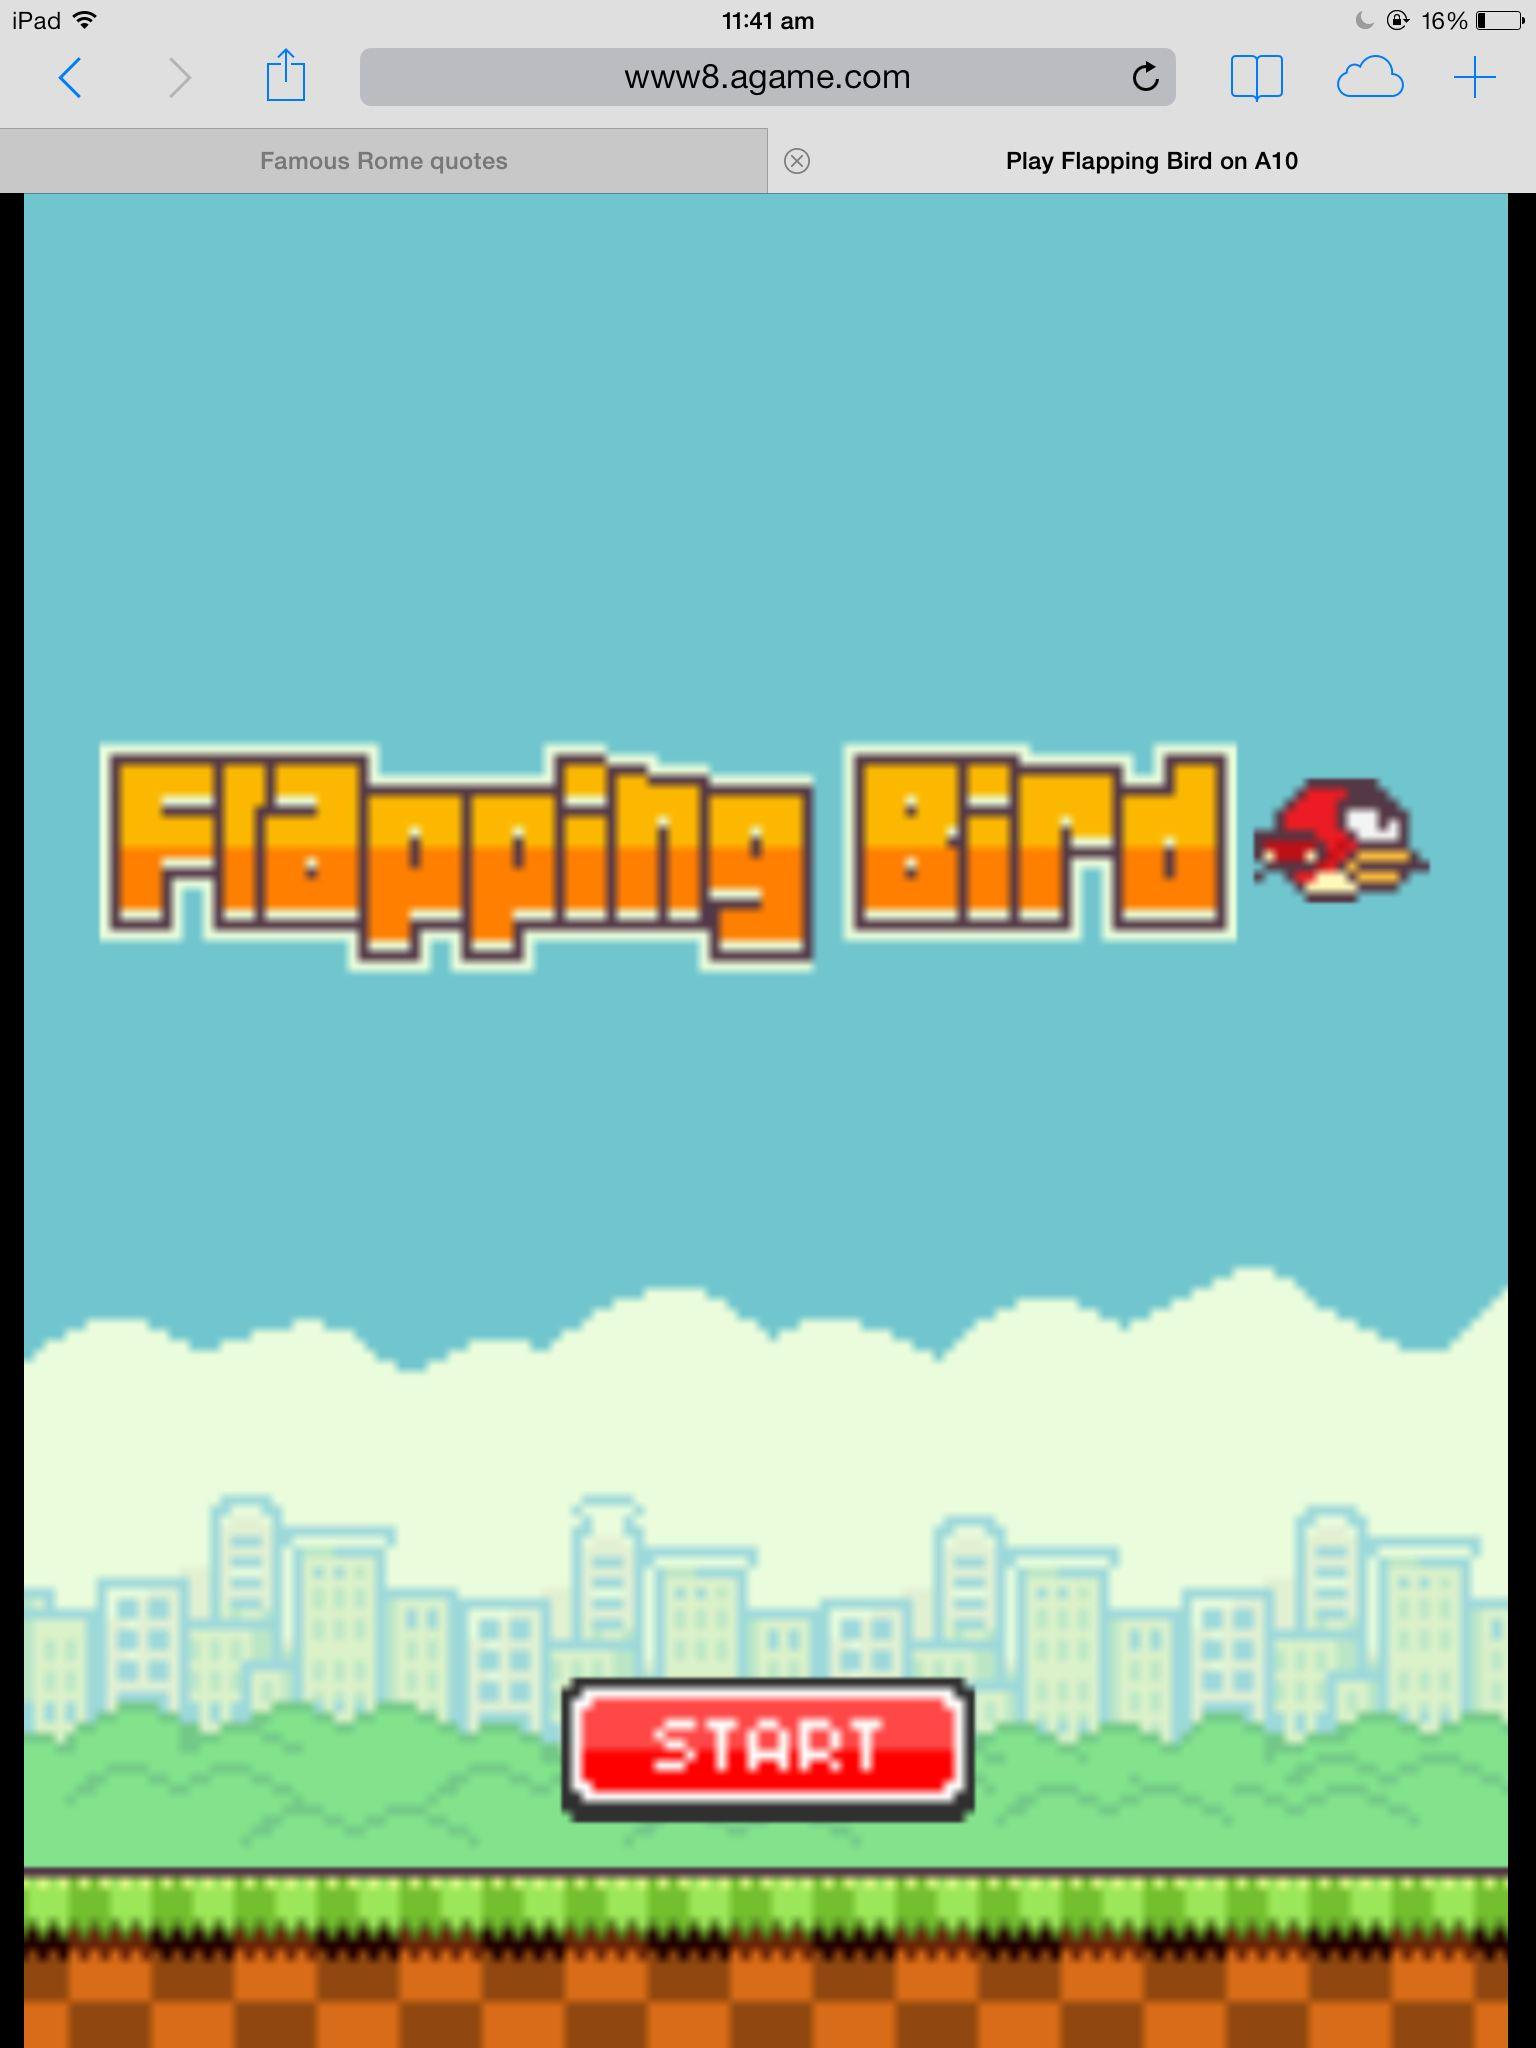 Type in flapping bird on Safari and keep on scrolling down